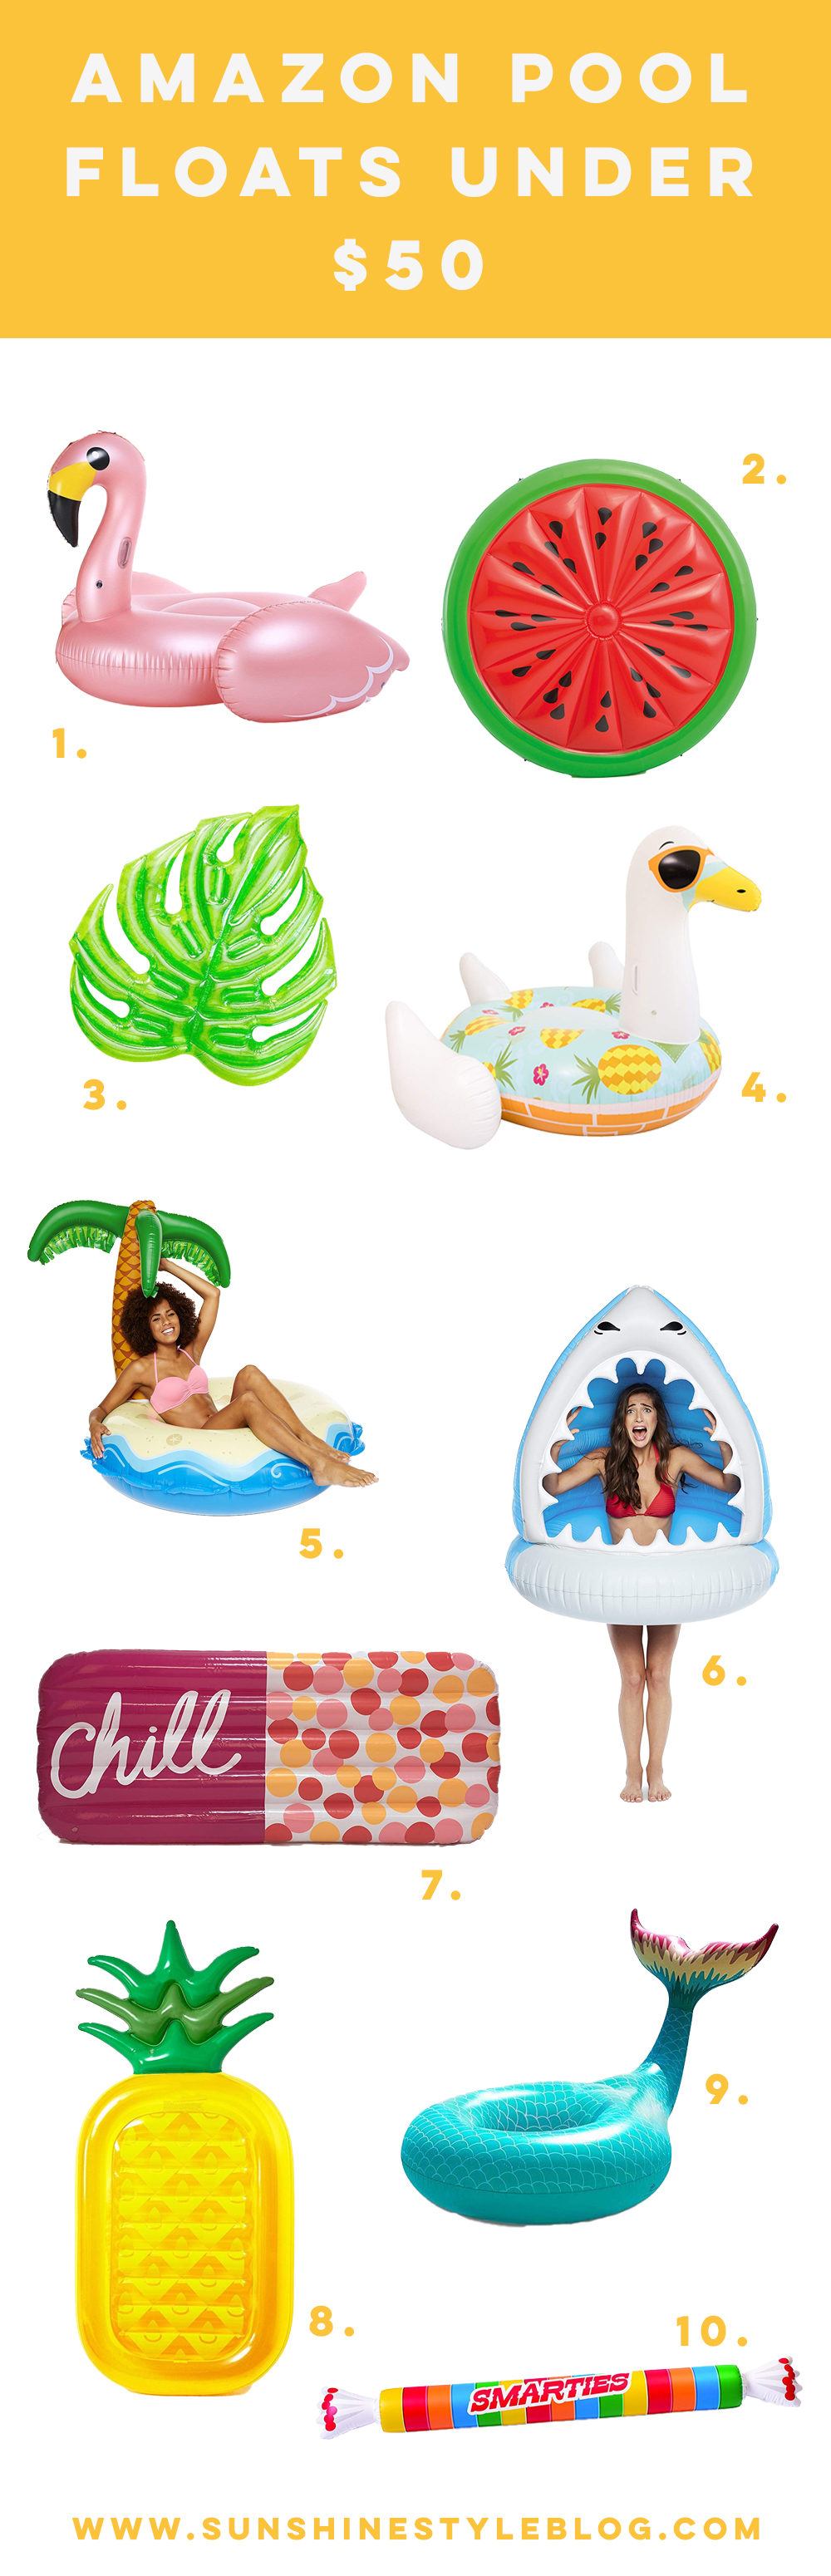 Amazon Pool Floats Under $50